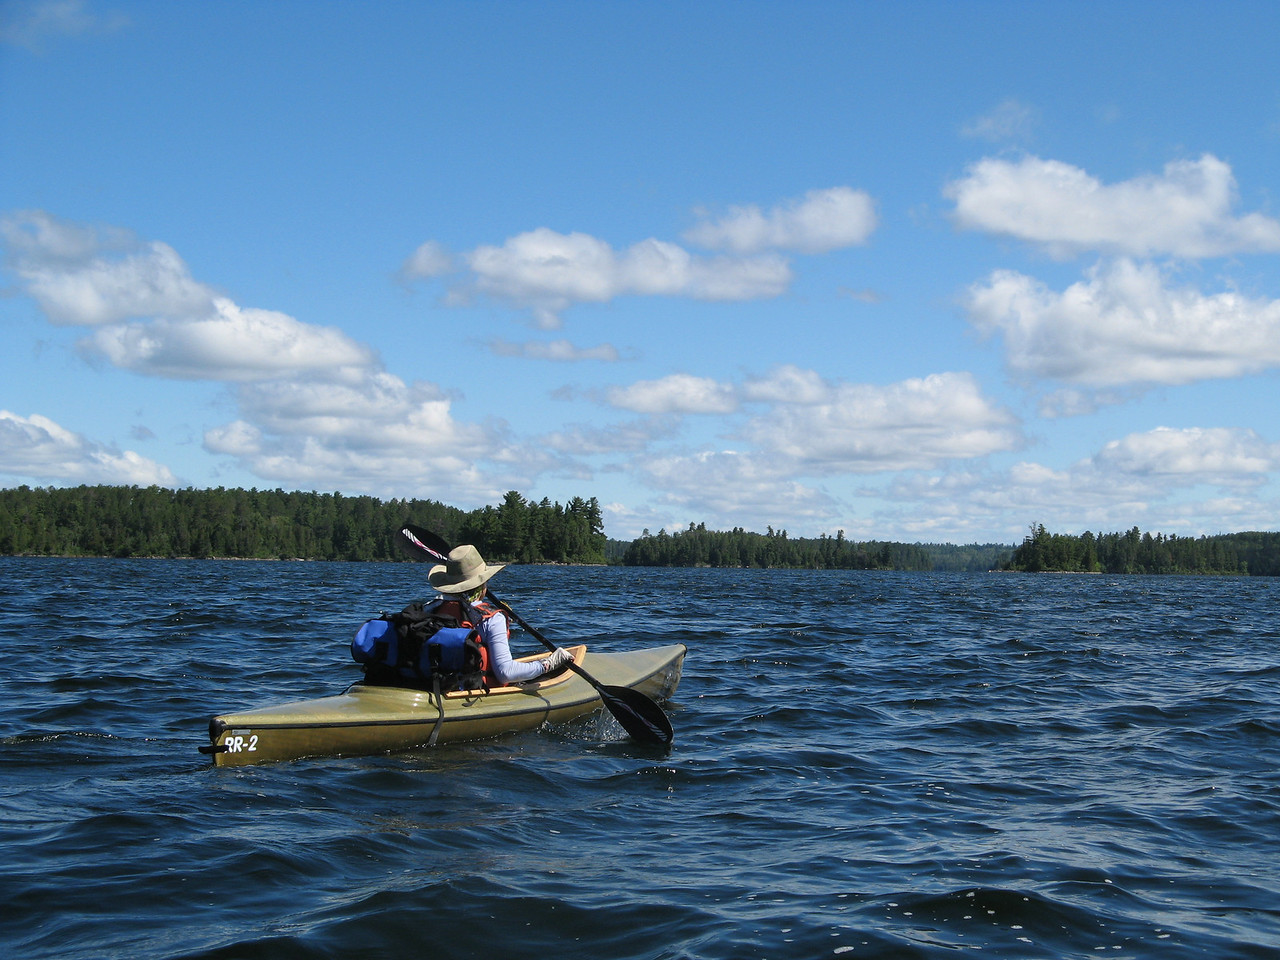 Starting out in some windy water in the Boundary Waters. I am following my guide Dominic and his dog in some Rob Roy's from Paragis Outfitters in Ely, MN.